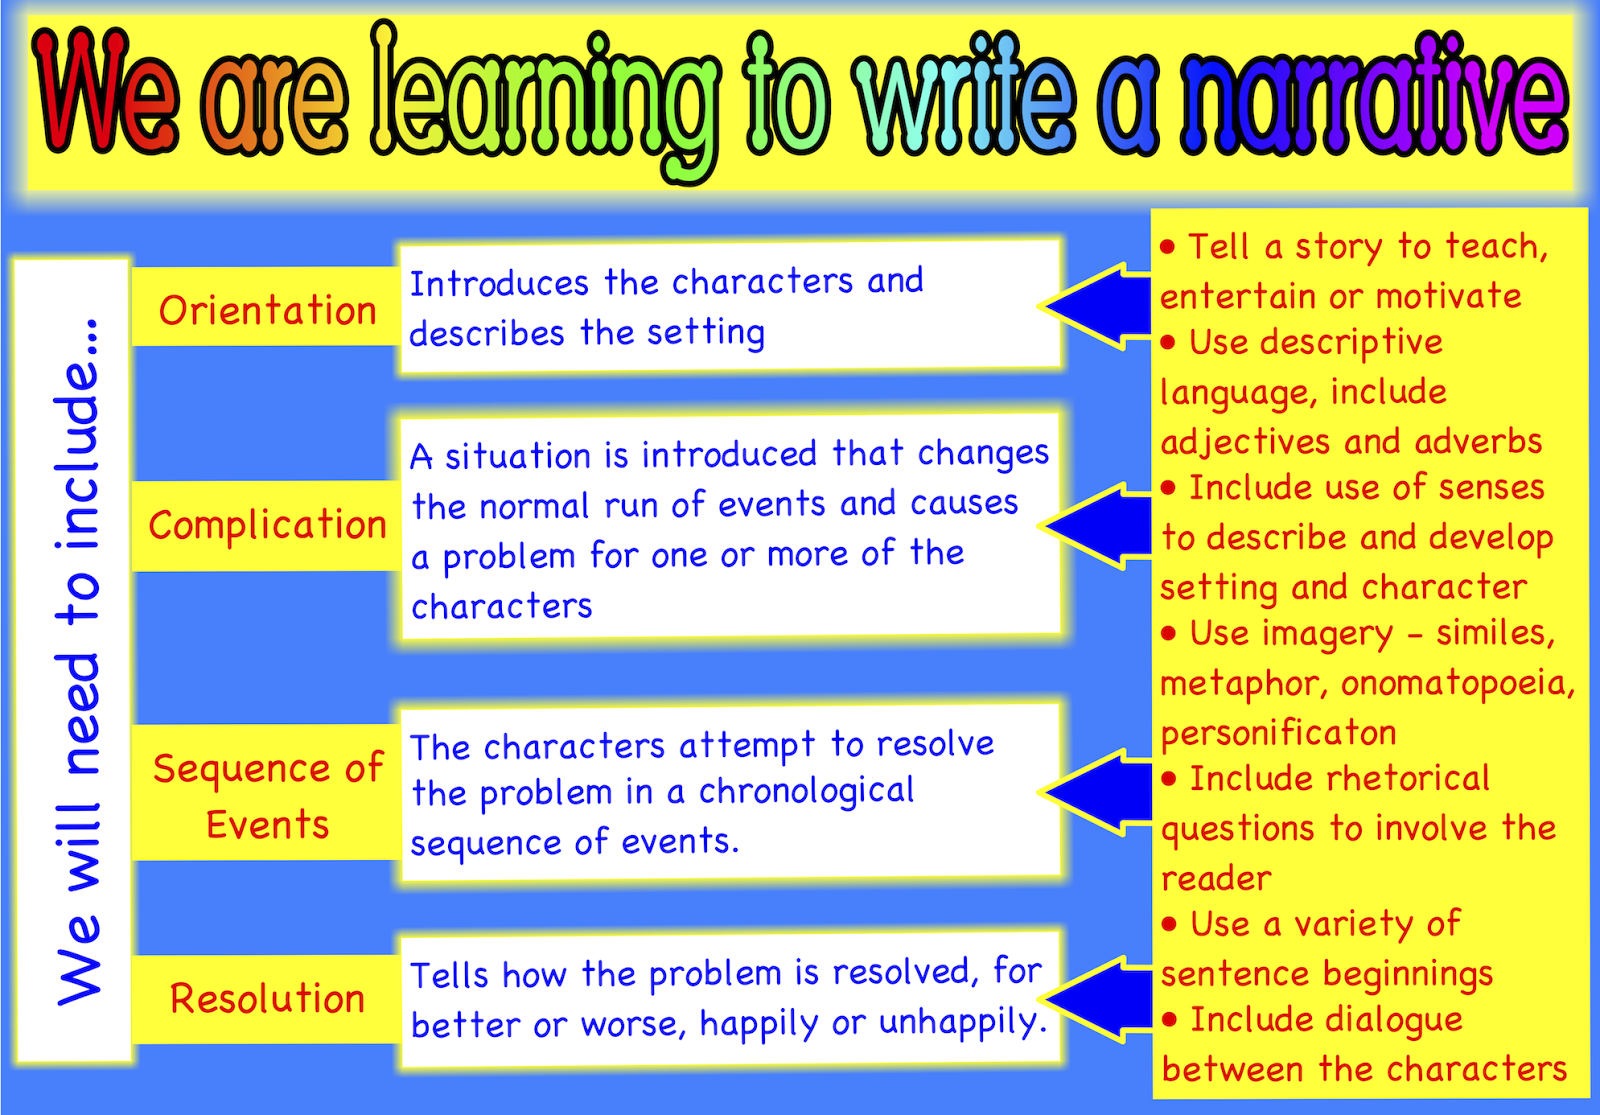 techniques narrative essays Free narrative techniques papers, essays, and research papers.